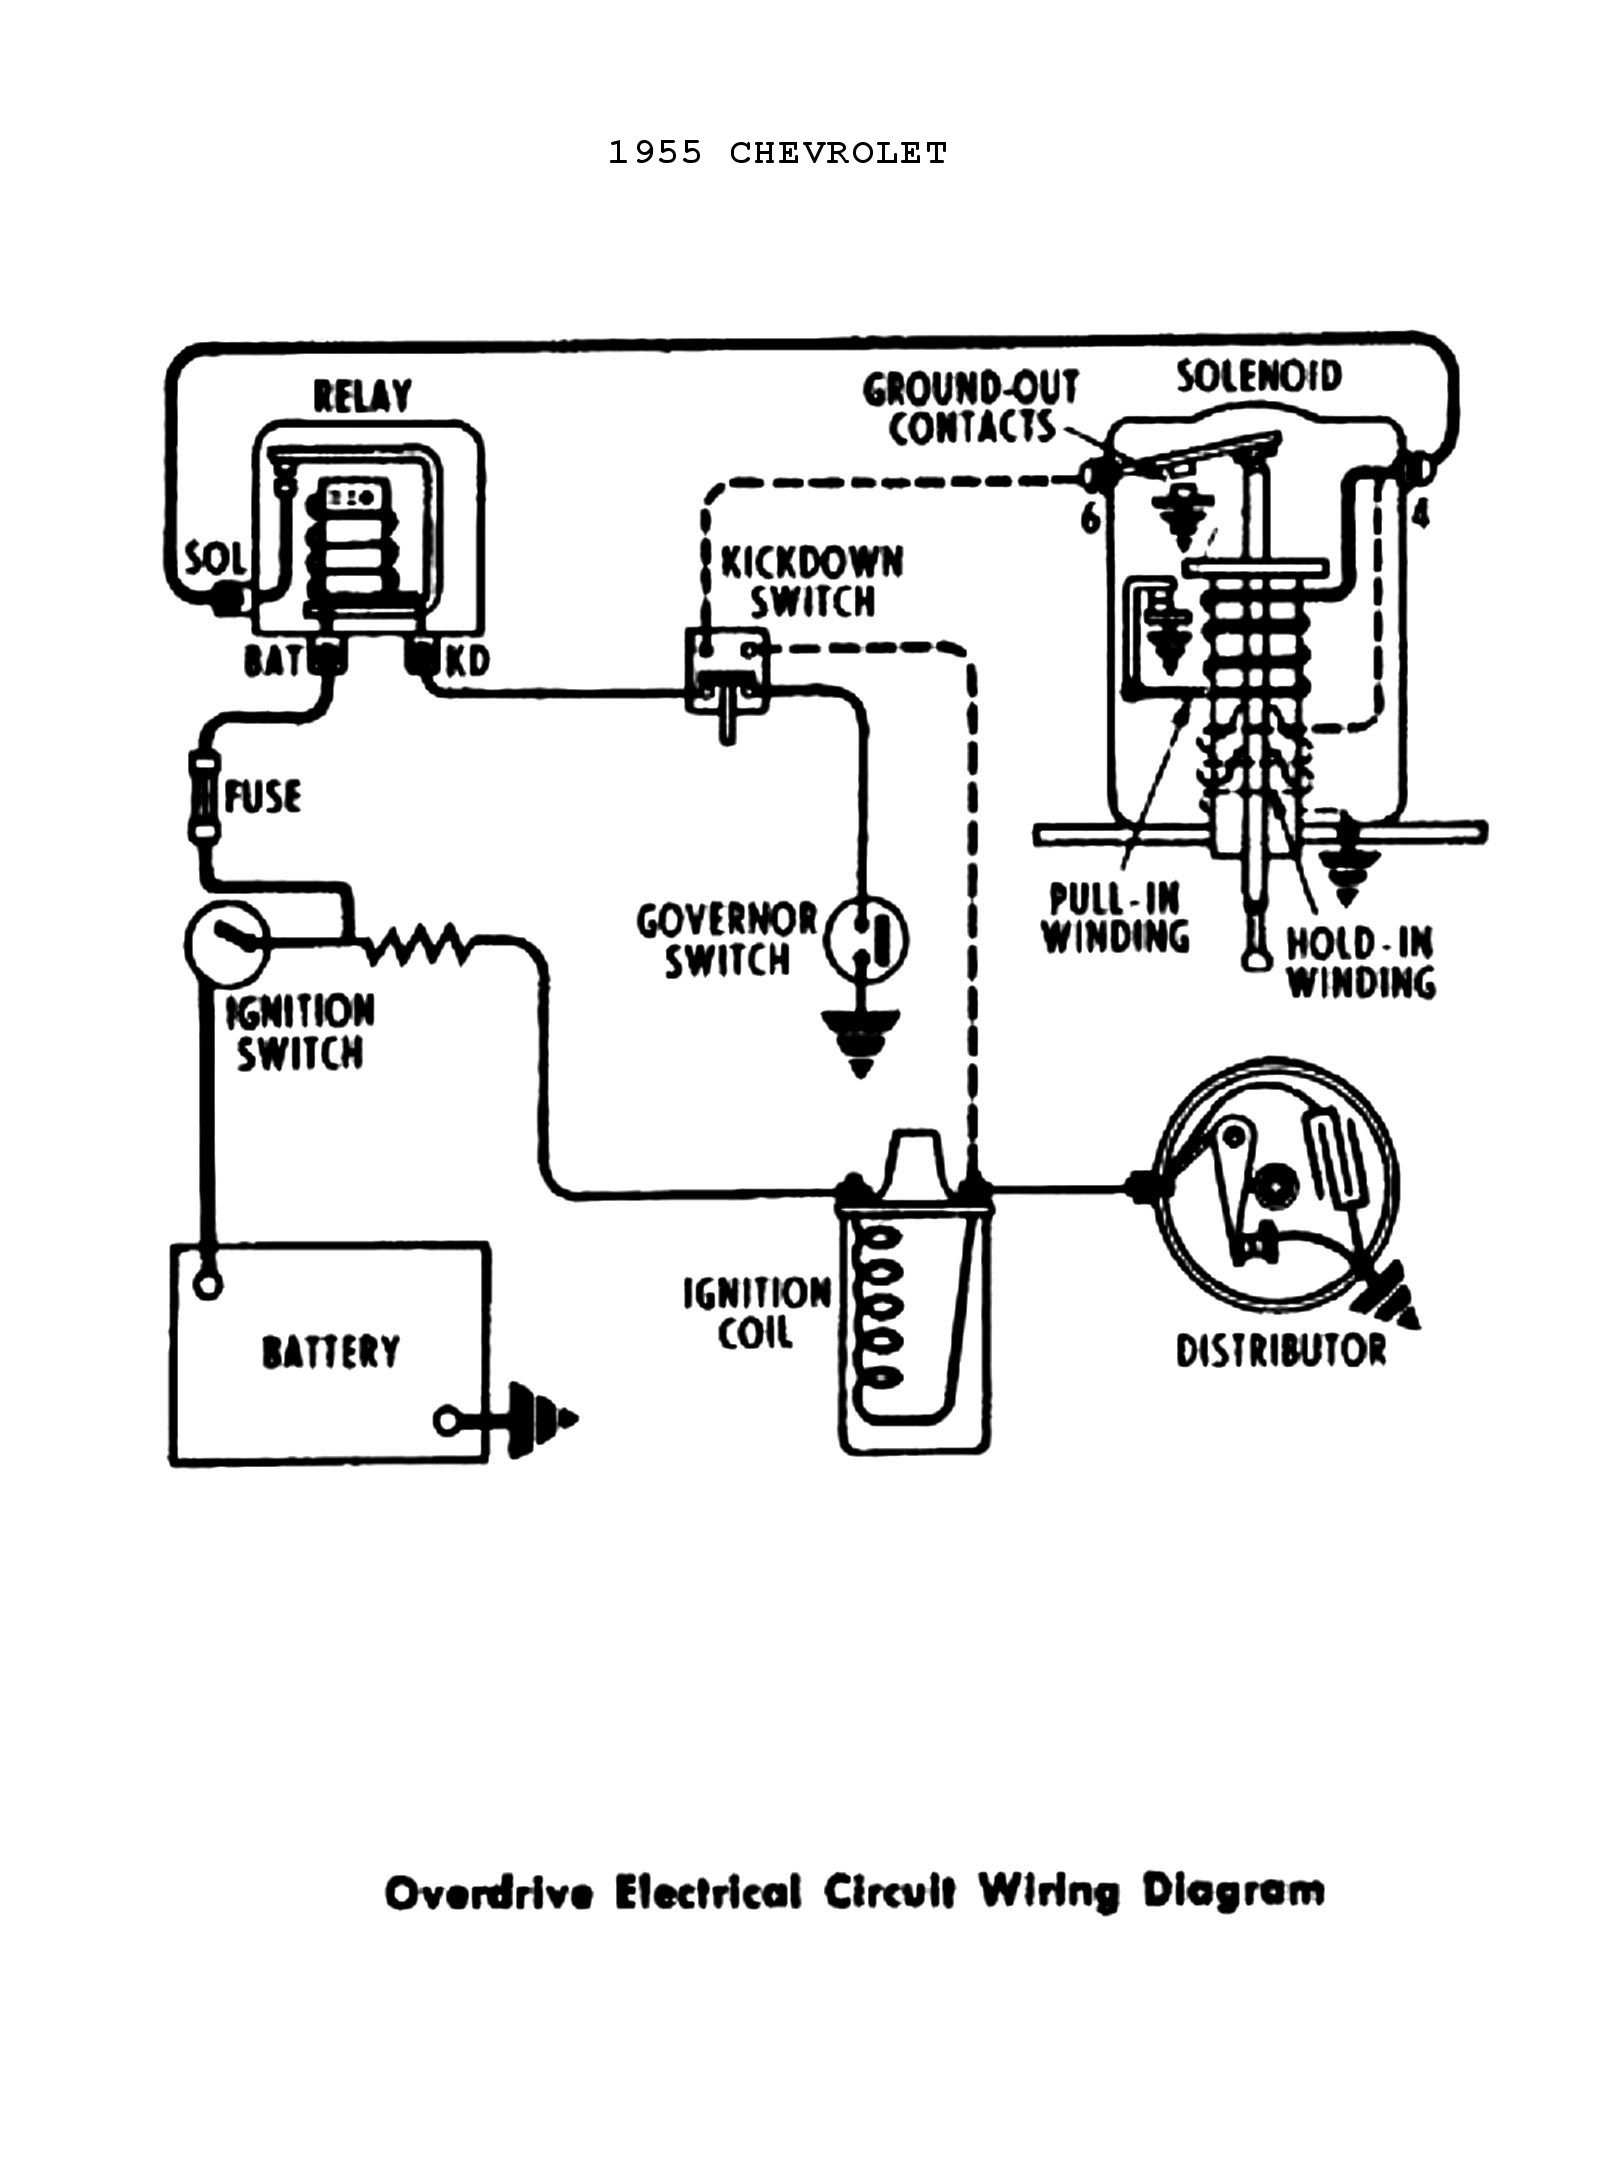 Basic engine wiring diagram chevy truck wiring diagram moreover 1955 chevy ignition switch of basic engine